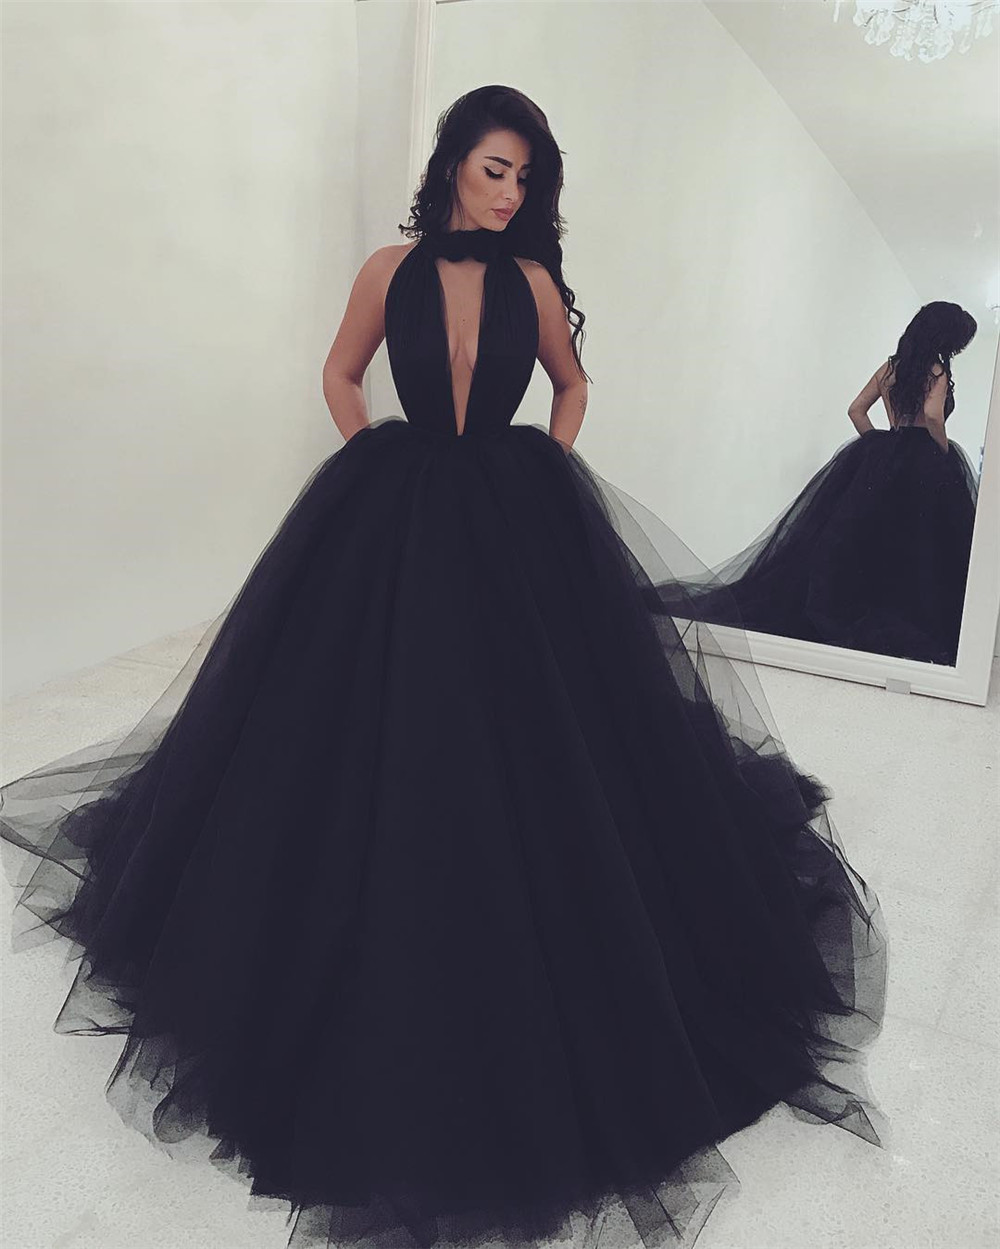 Sexy Backless Halter Black Long Prom Dresses 2020 Robe De Mariee Ball Gown Deep V Neck Party Dress Vestidos De Gala